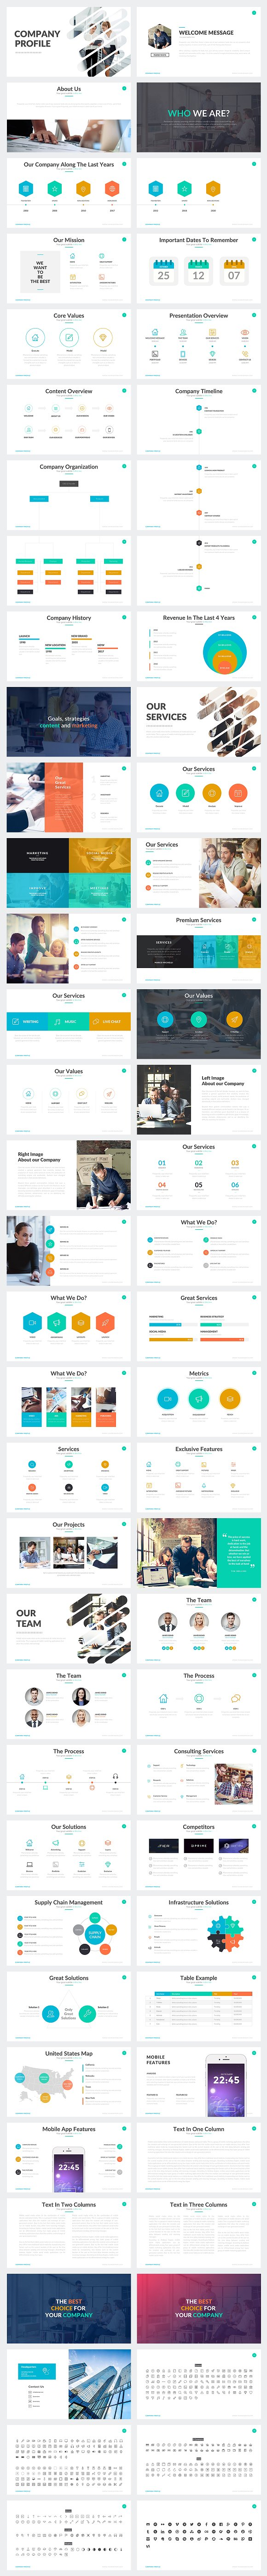 Company Profile Powerpoint Template Presentation Templates